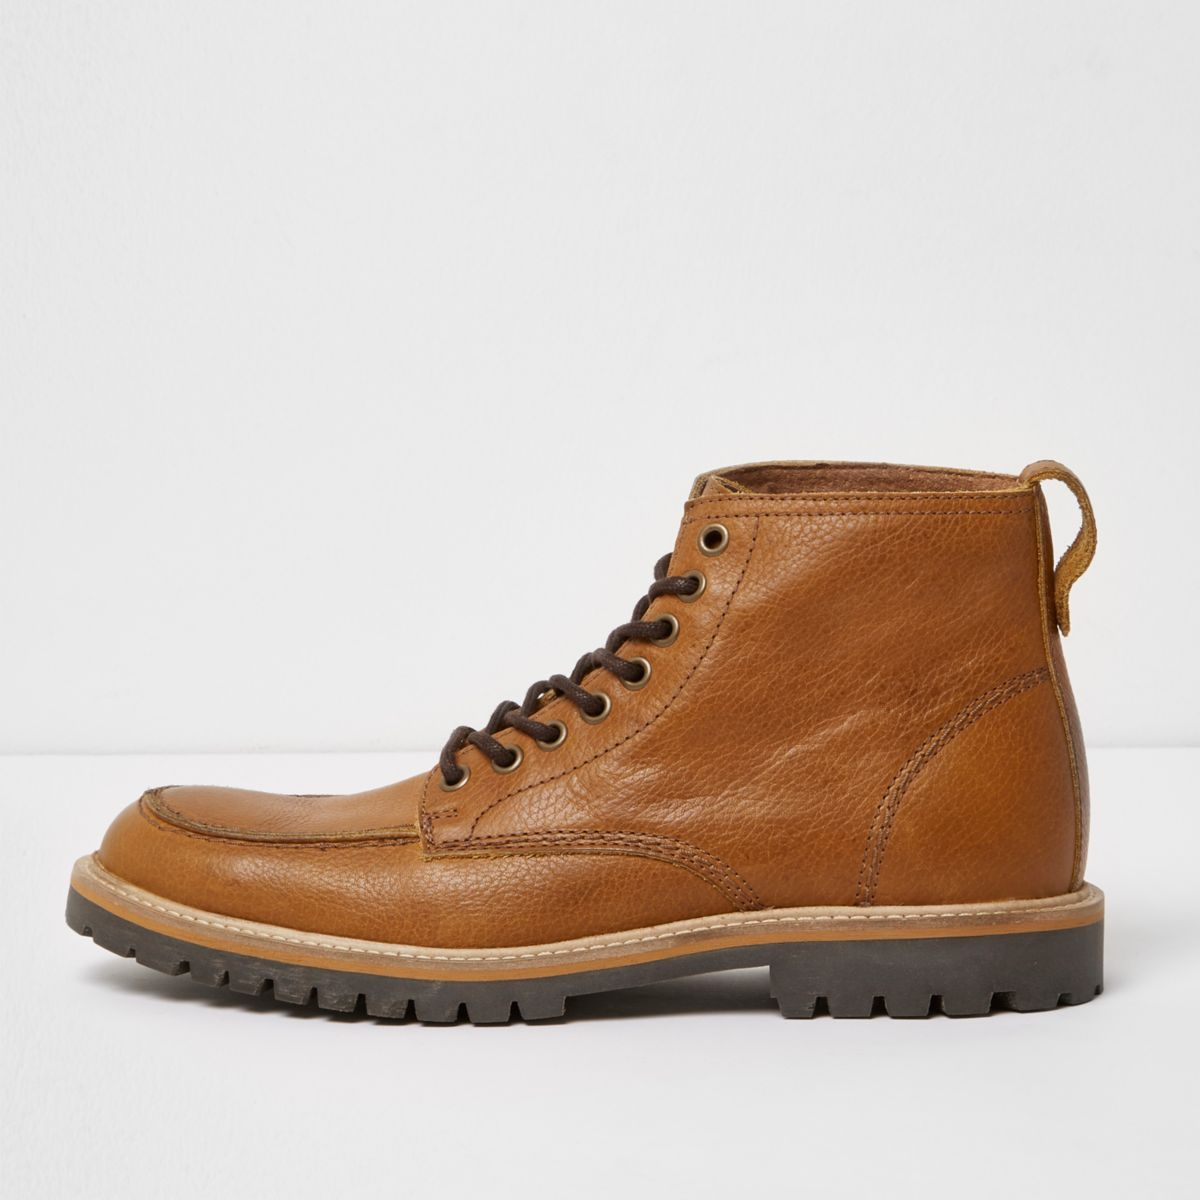 Light brown apron toe leather boots